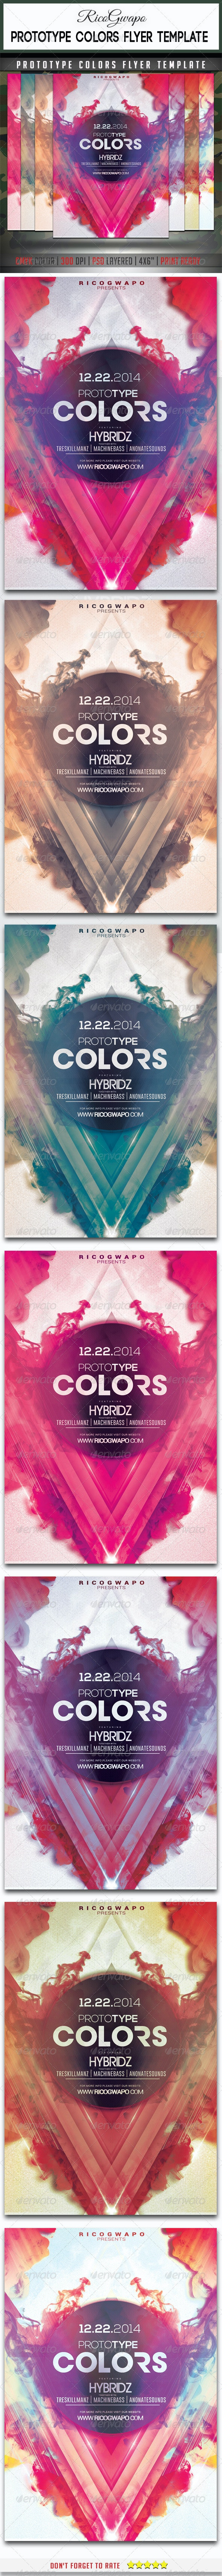 Prototype Colors Flyer Template - Clubs & Parties Events